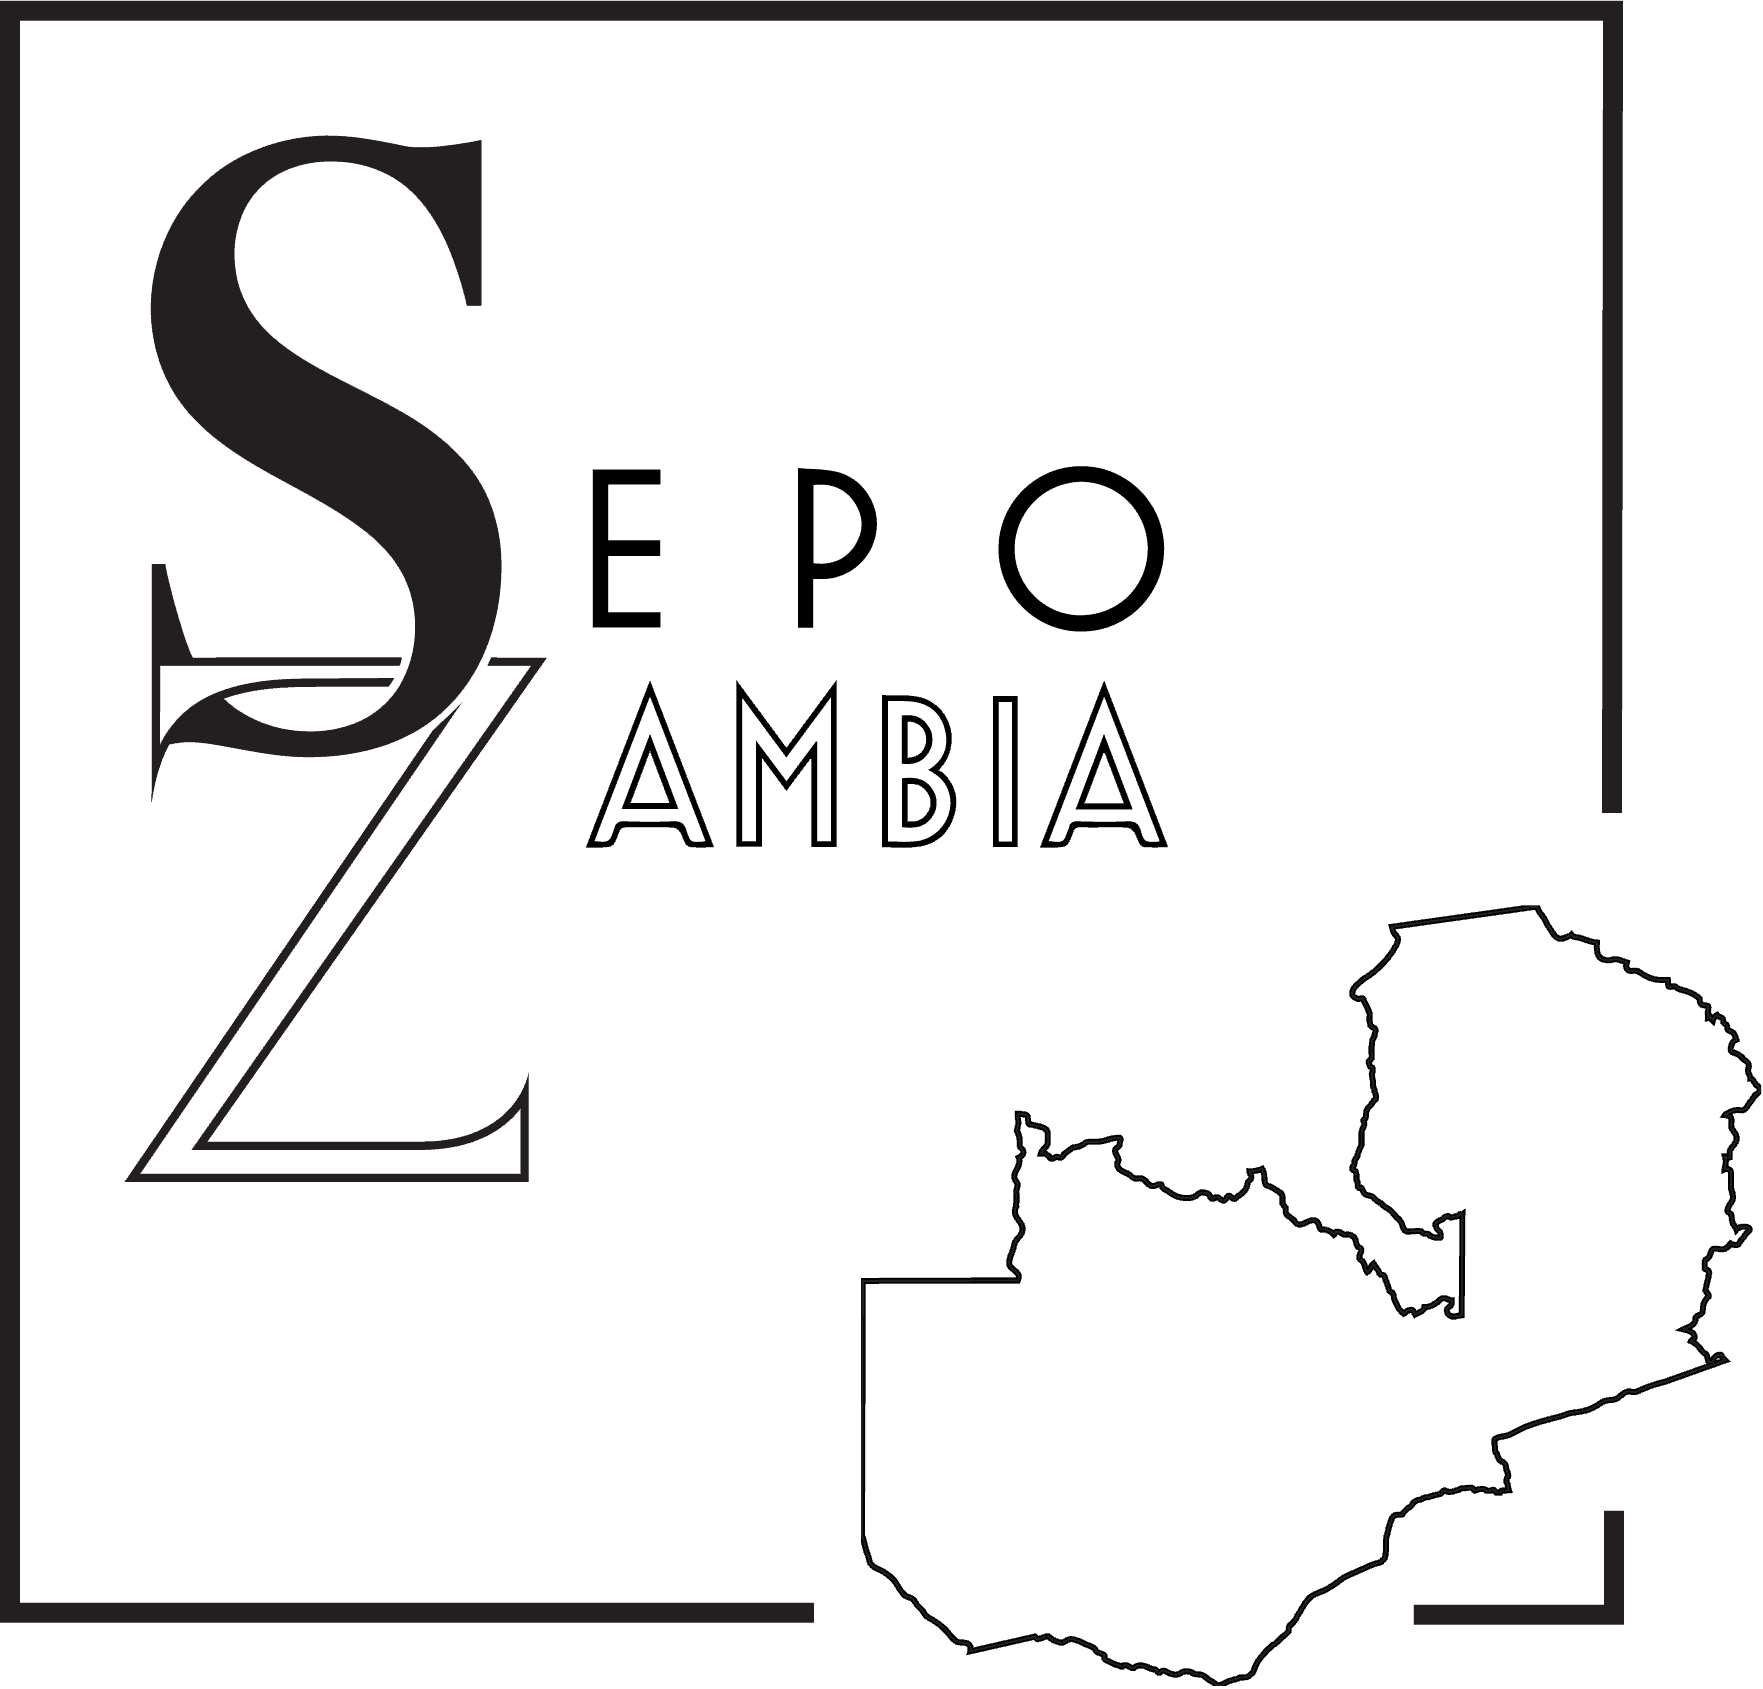 Logo for our client Sepo Zambia, non-profit organization dedicated to sustainability, education, and progress in western Zambia.